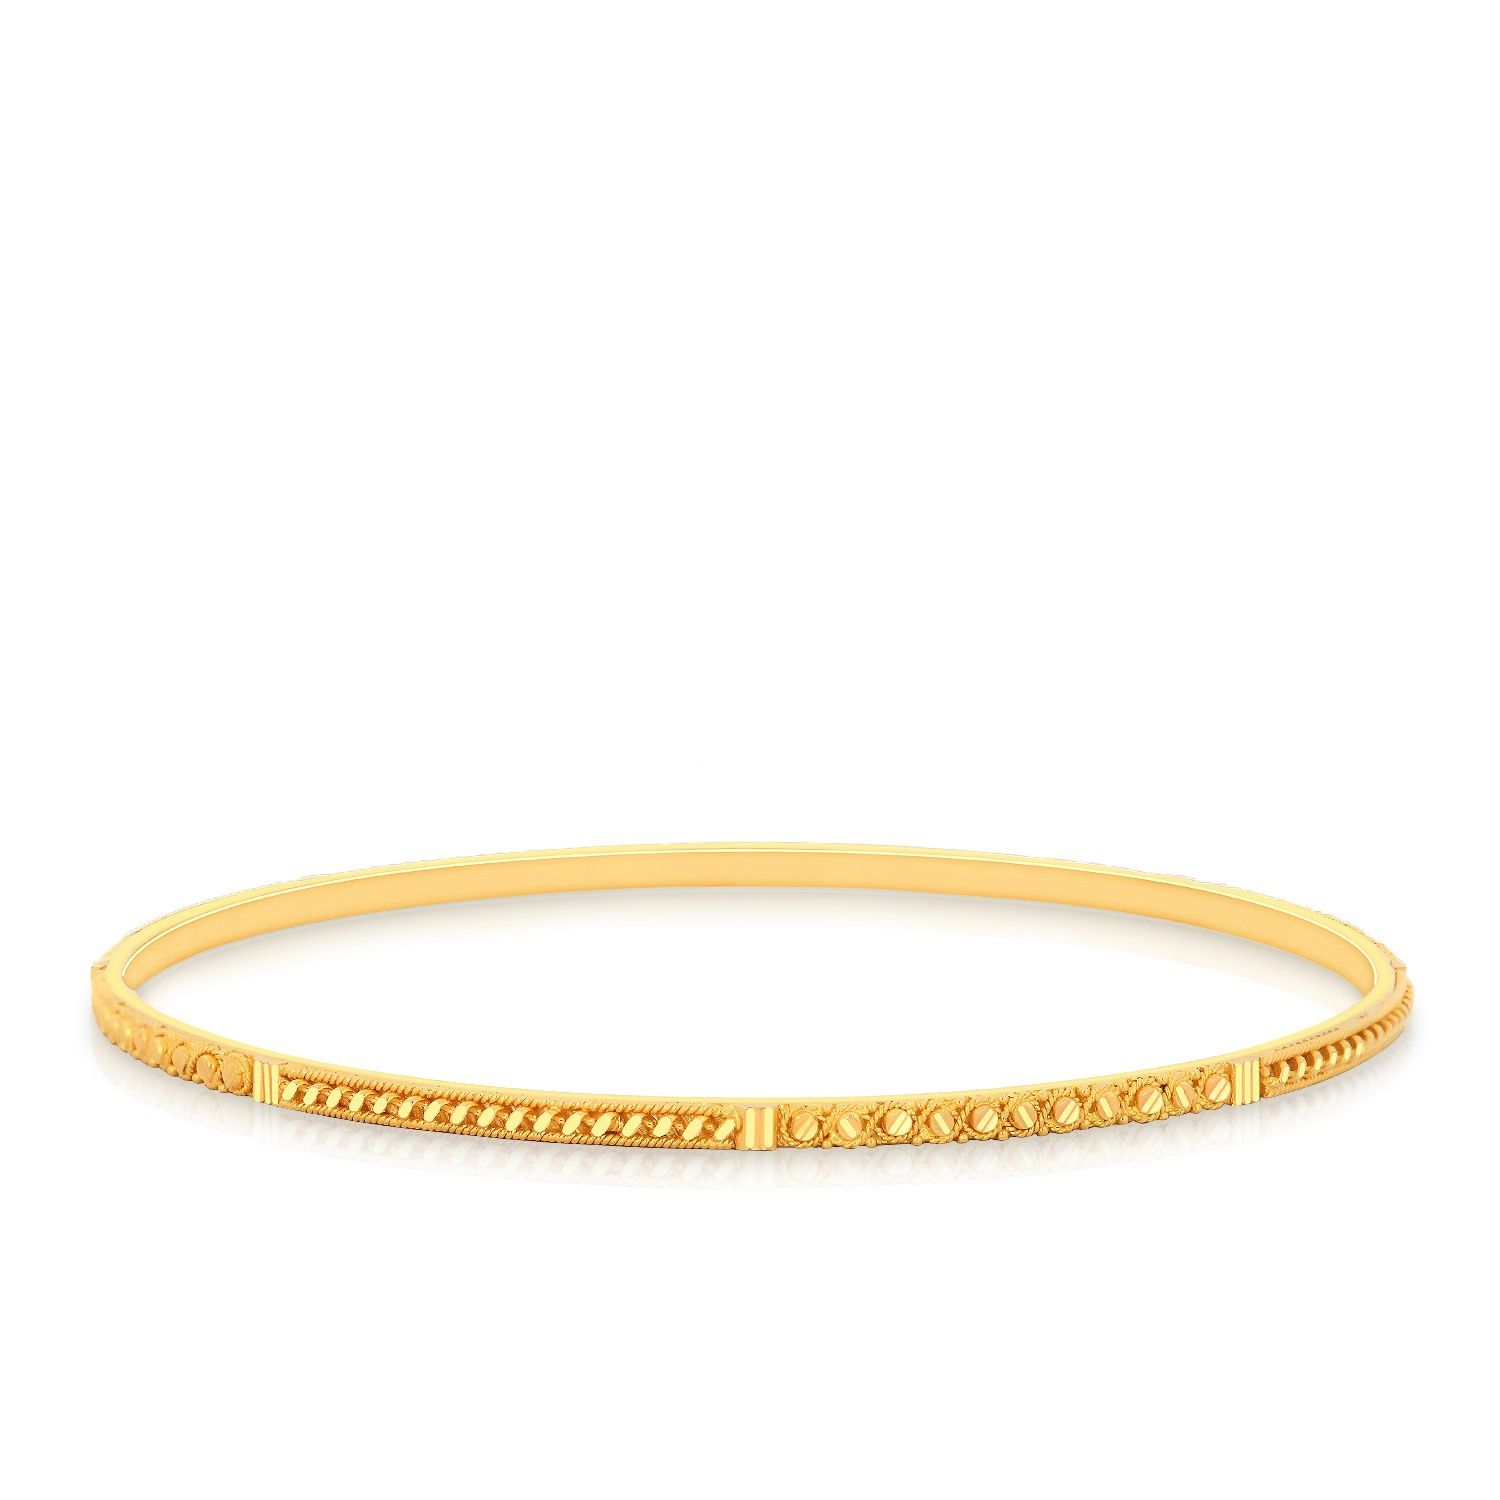 bangles simple gold listing plain cuff fullxfull il bangle filled zoom bracelet